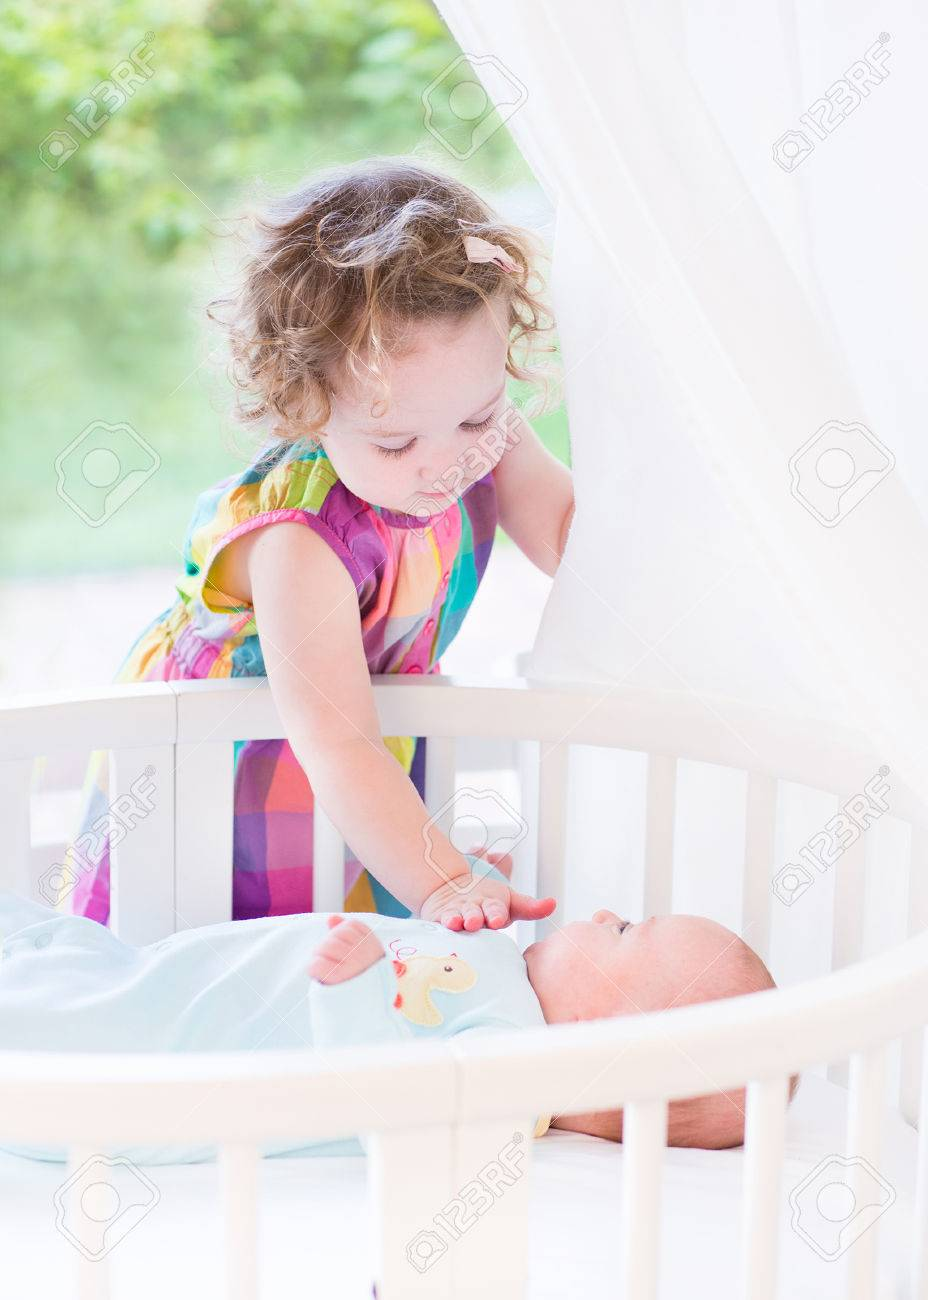 Baby cribs big w - Cute Toddler Girl Playing With Her Newborn Baby Brother Laying In A White Round Crib Next